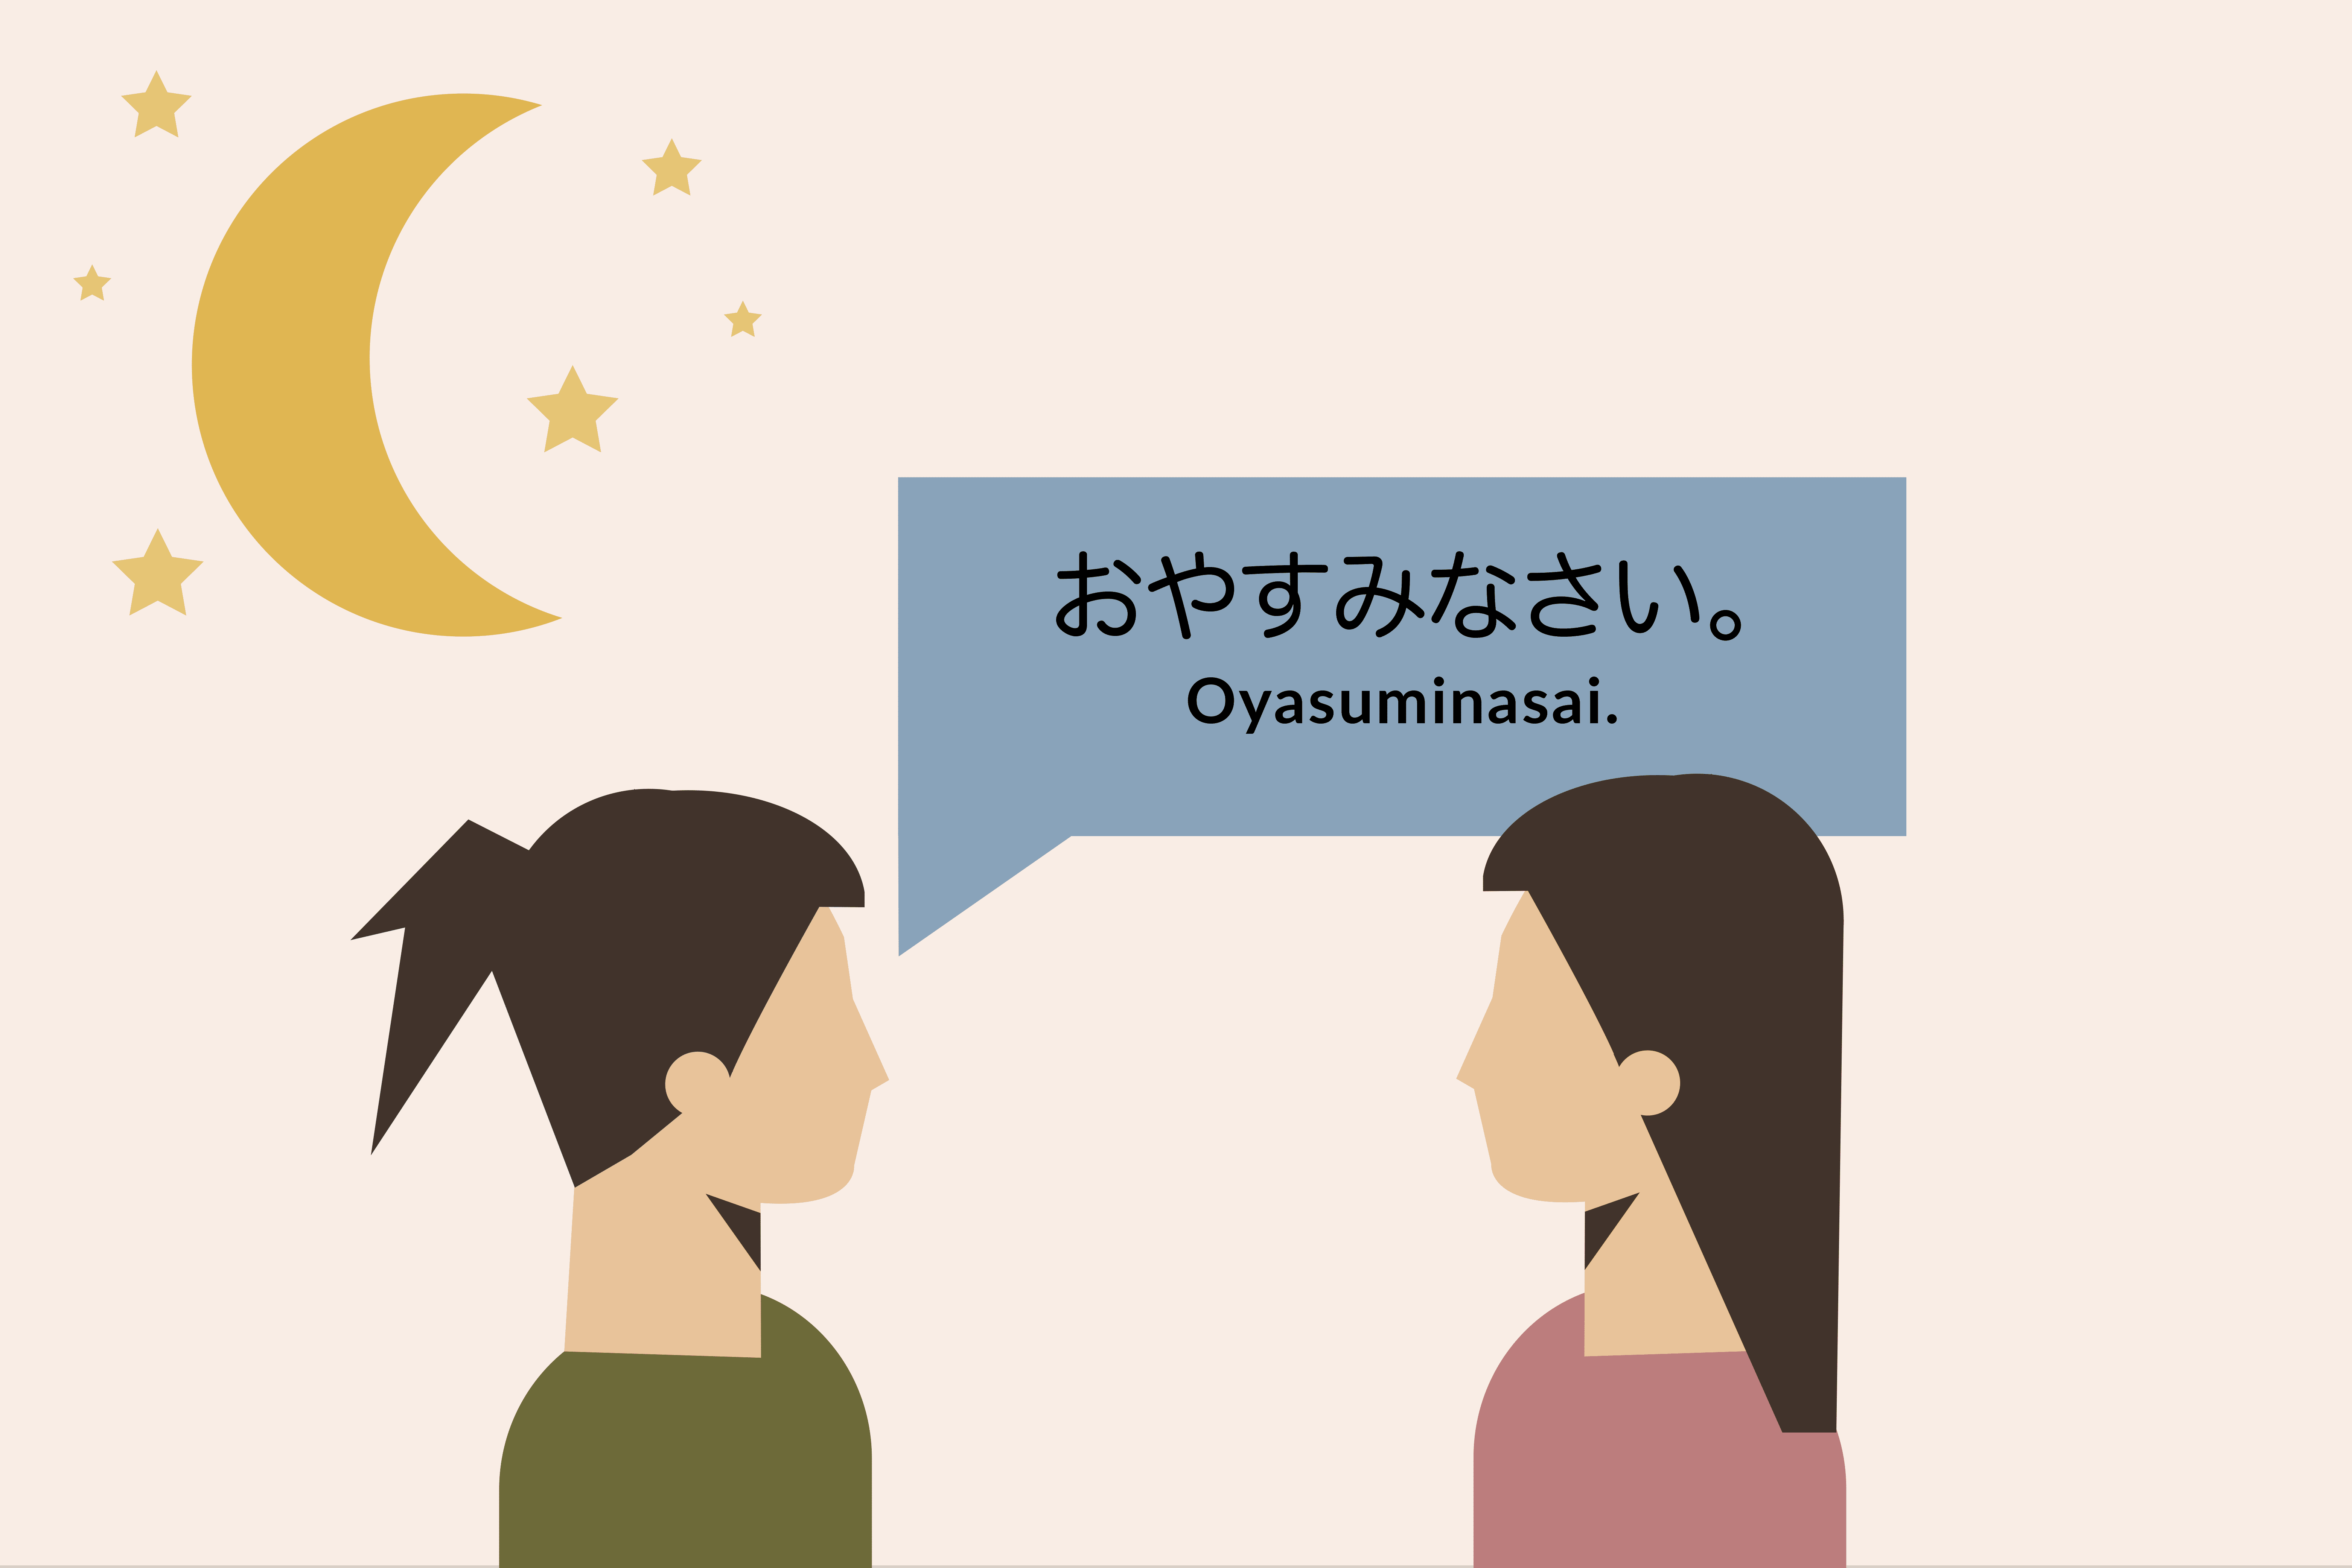 Good Morning In French And Italian : How to say good night oyasuminasai in japanese